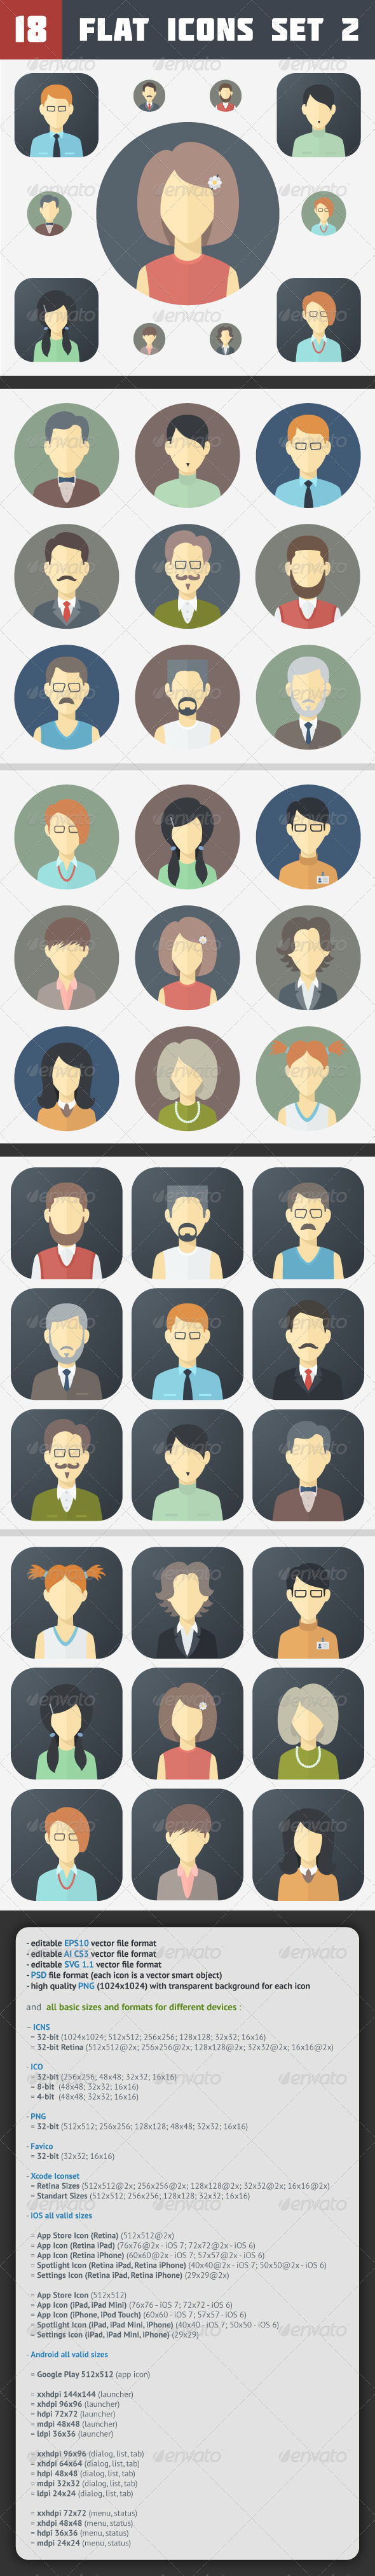 GraphicRiver Minimalistic Flat Faces Icons Set 2 7093110